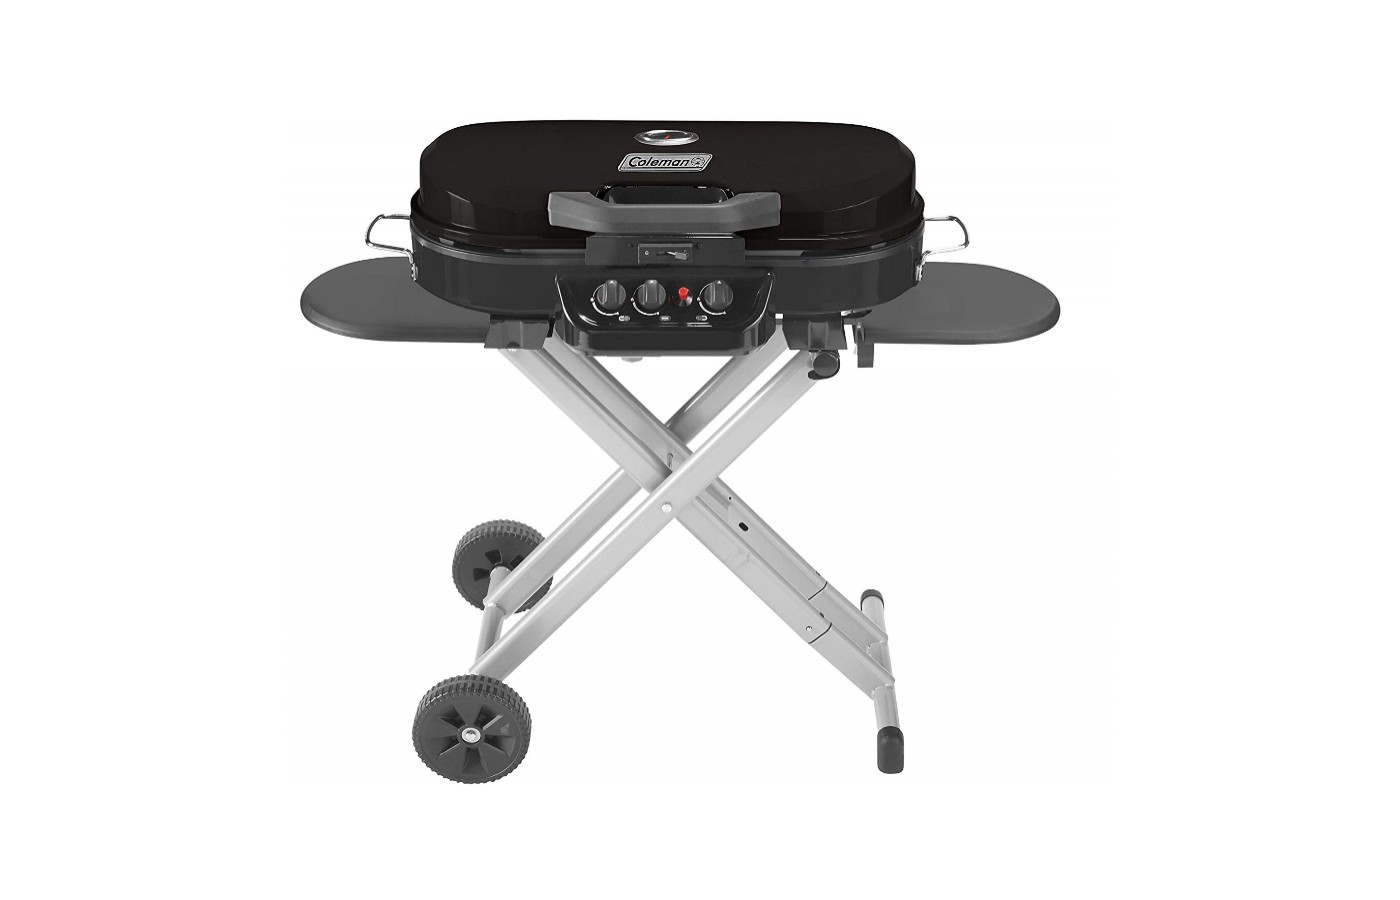 The Roadtrip lxx offers an easily portable grill for camping, tailgate parties, and park gatherings.